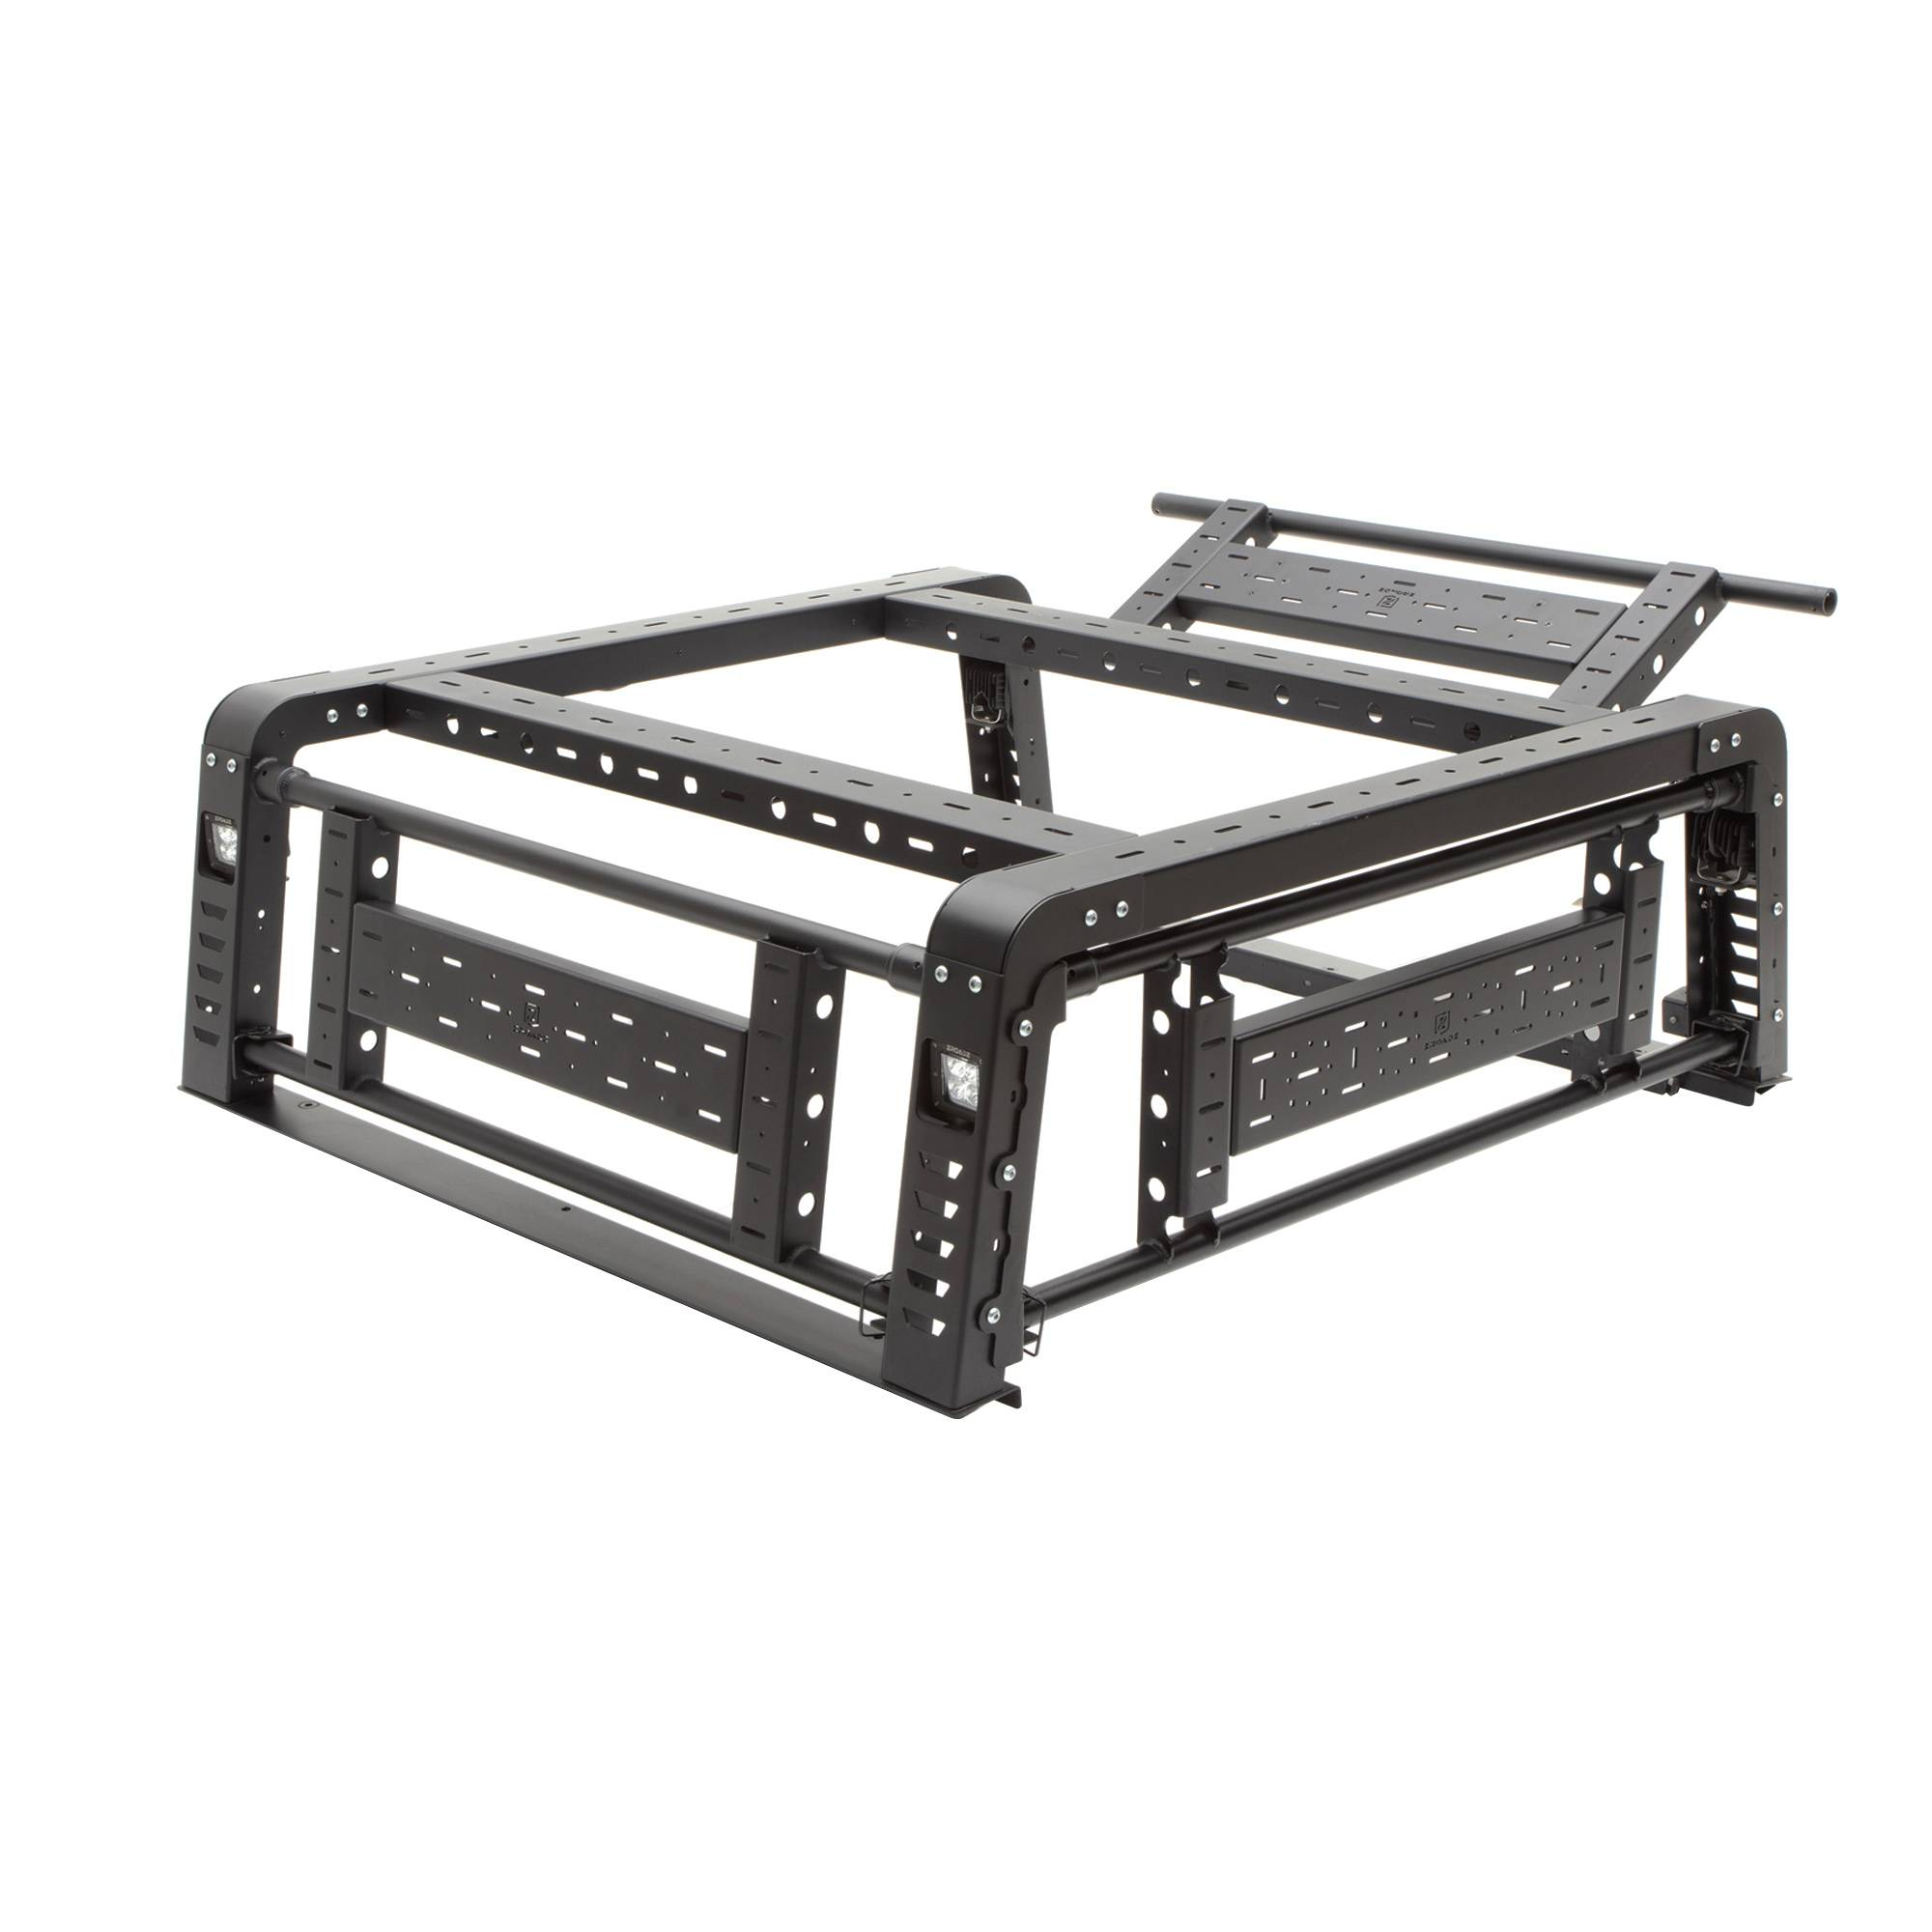 ZROADZ OFF ROAD PRODUCTS - 2016-2021 Toyota Tacoma Access Overland Rack With Three Lifting Side Gates - PN #Z839201